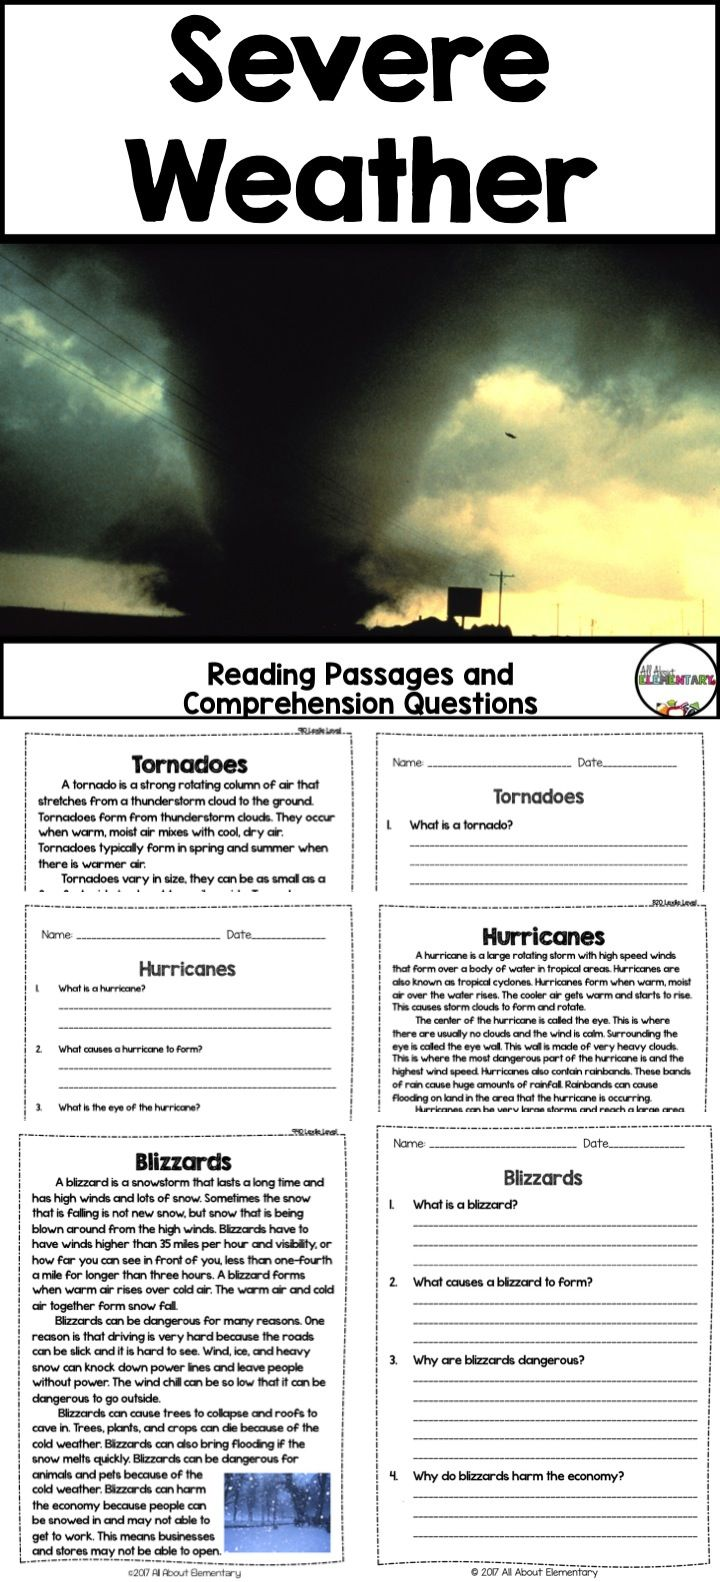 Severe Weather Reading Passages And Comprehension Questions Reading Passages Leveled Reading Passages Comprehension Questions